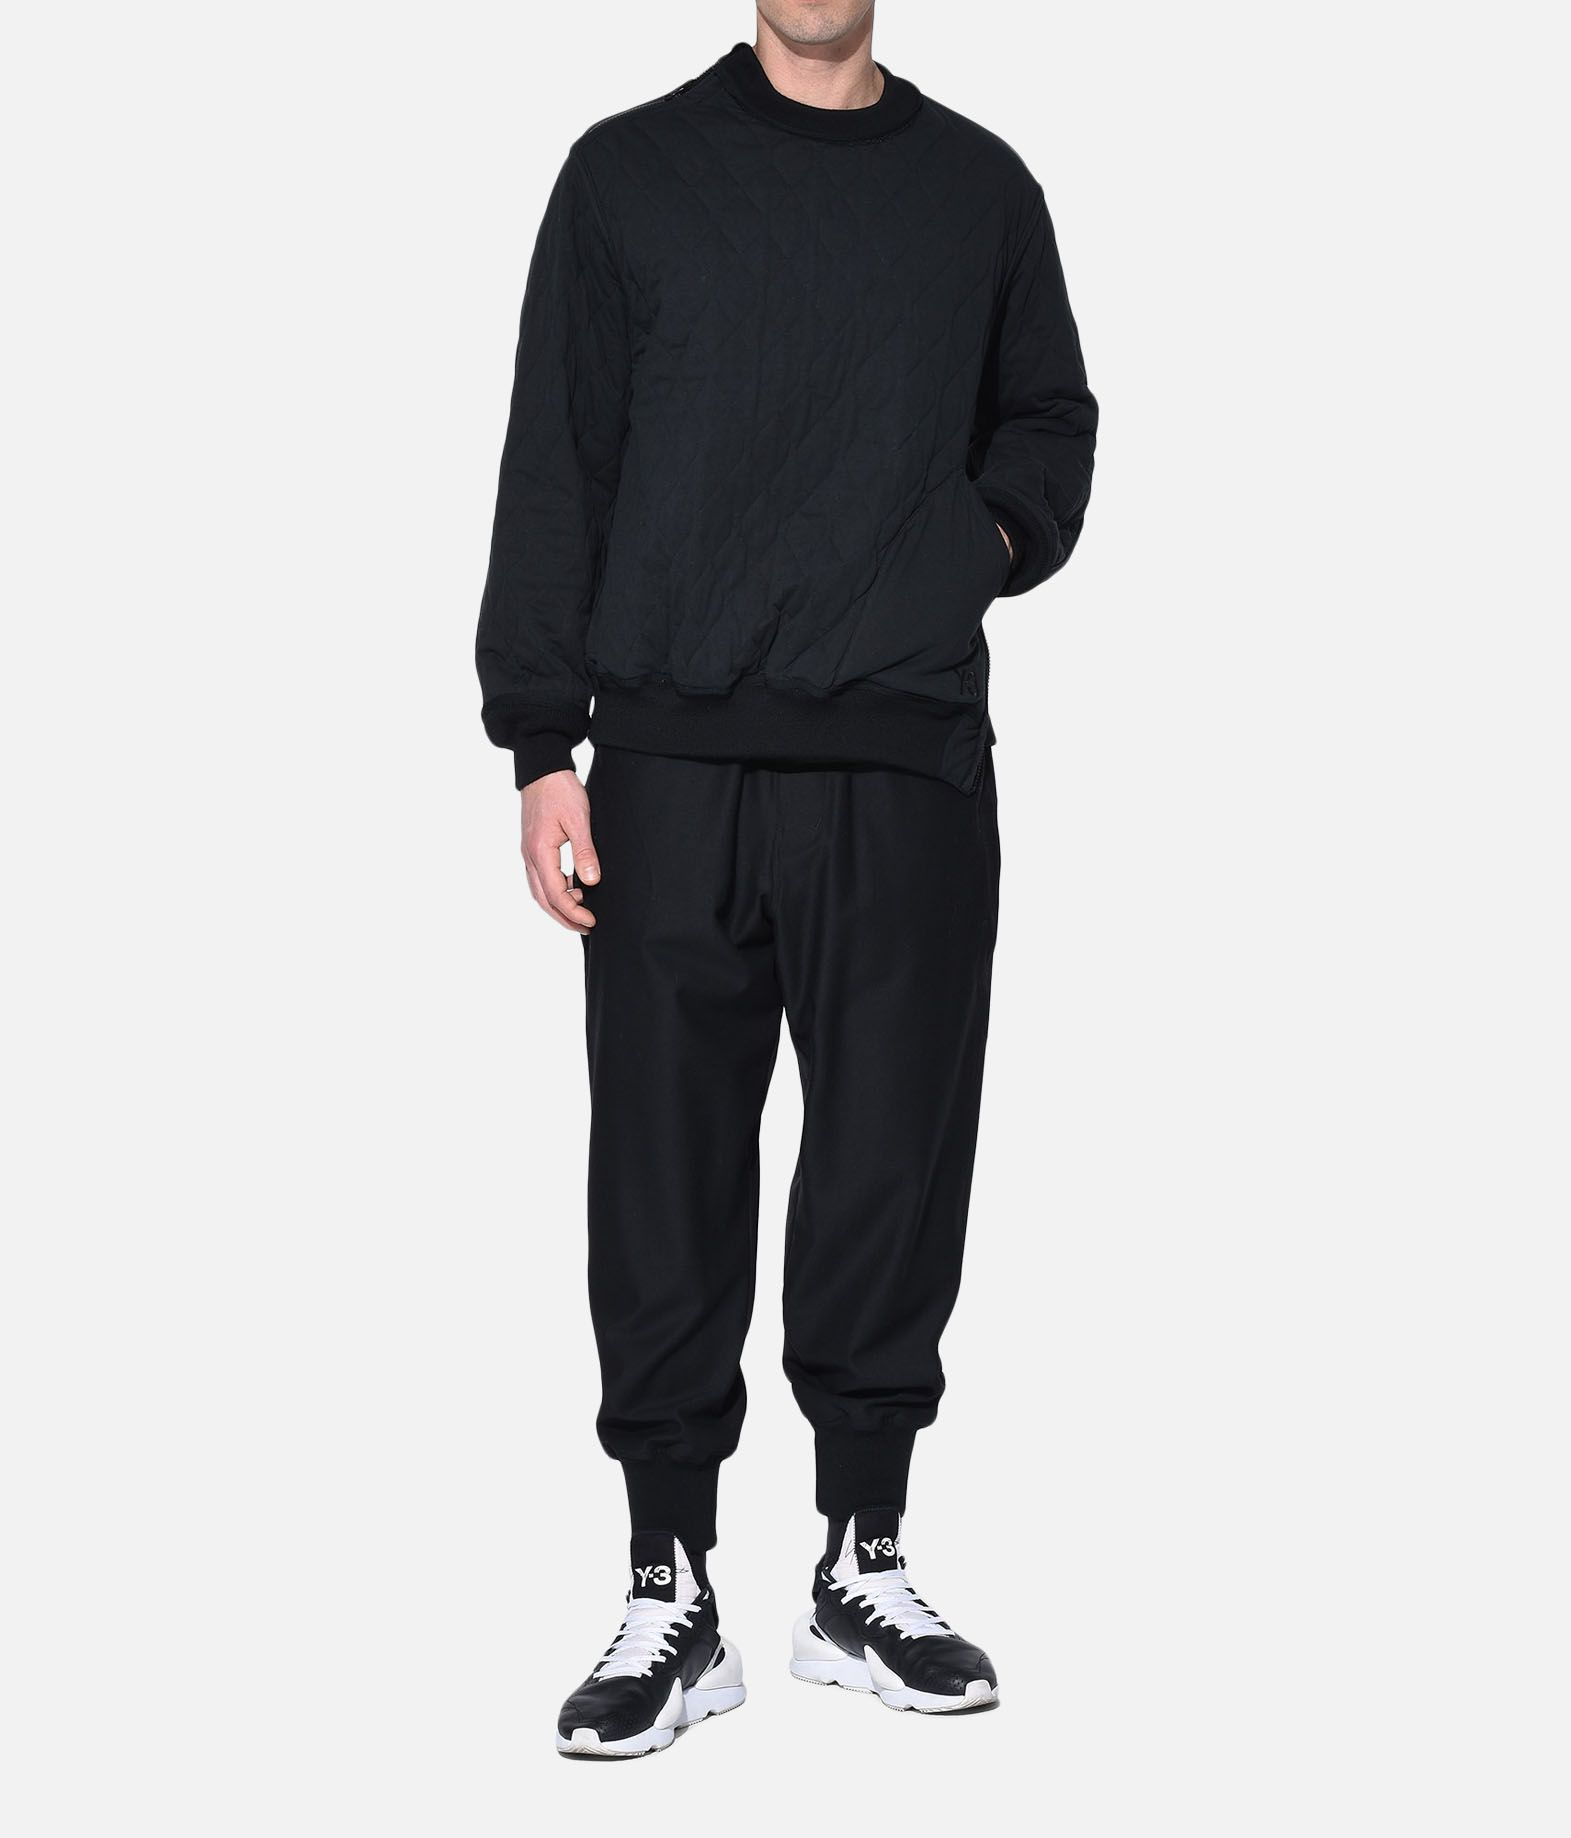 Y-3 Y-3 Quilted Sweater Sweatshirt Man a